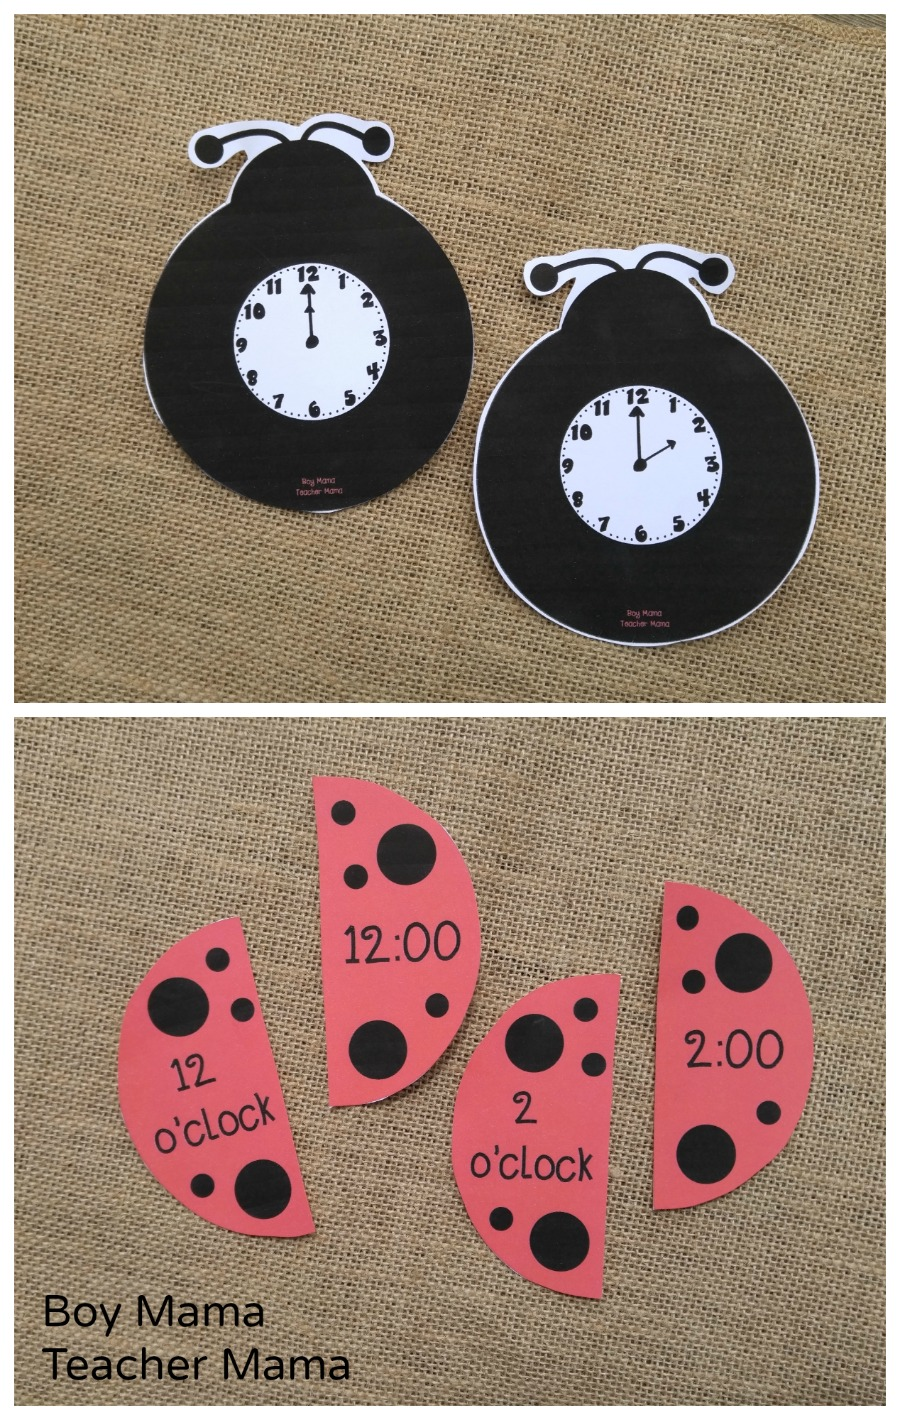 Boy Mama Teacher Mama O'Clock Ladybug Puzzles